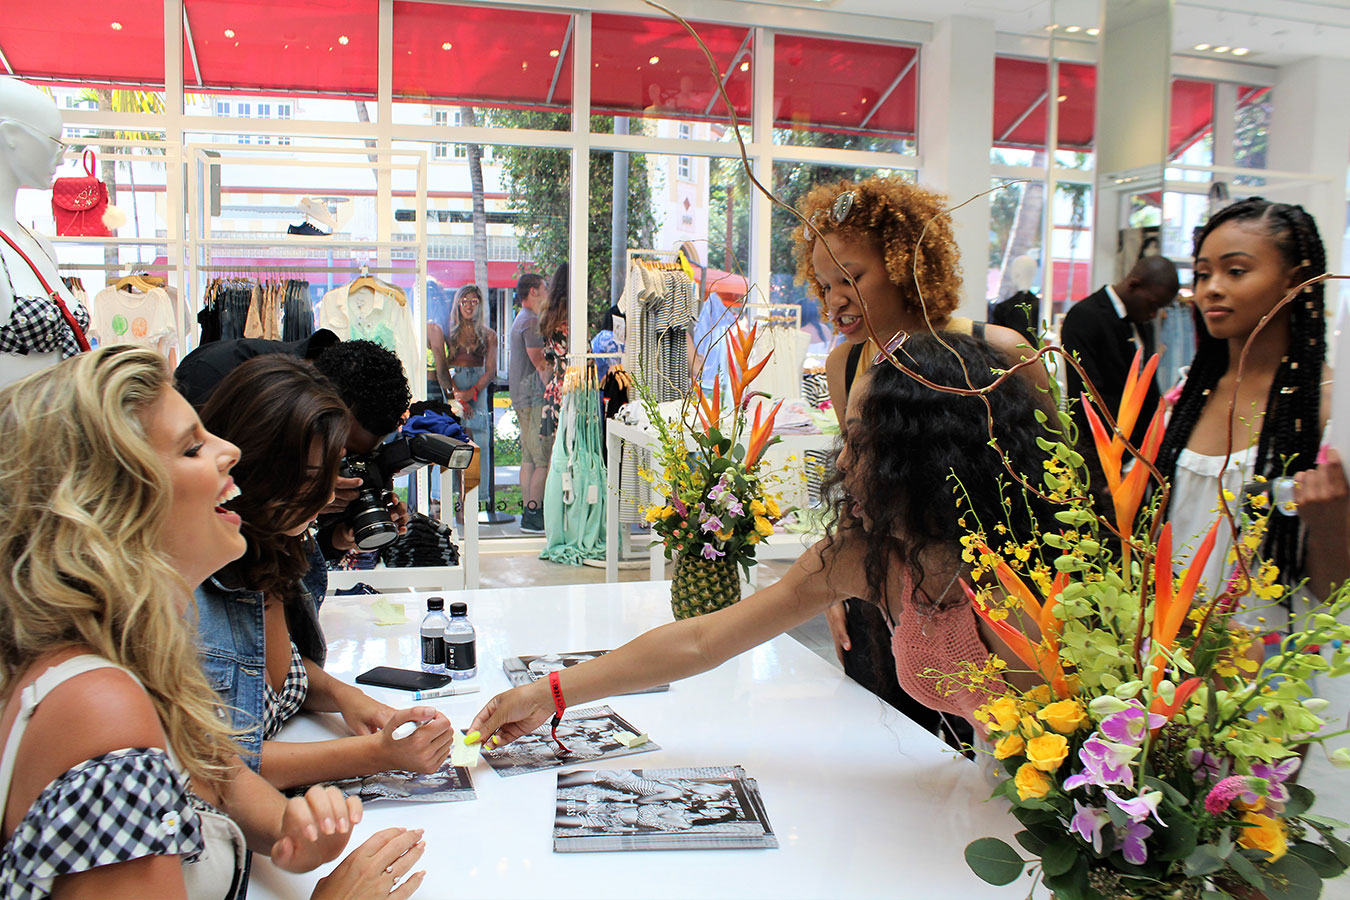 Tasha Oakley and Devin Brugman autograph posters for fans at GUESS Lincoln Road store event to promote their 2017 swimsuit collection